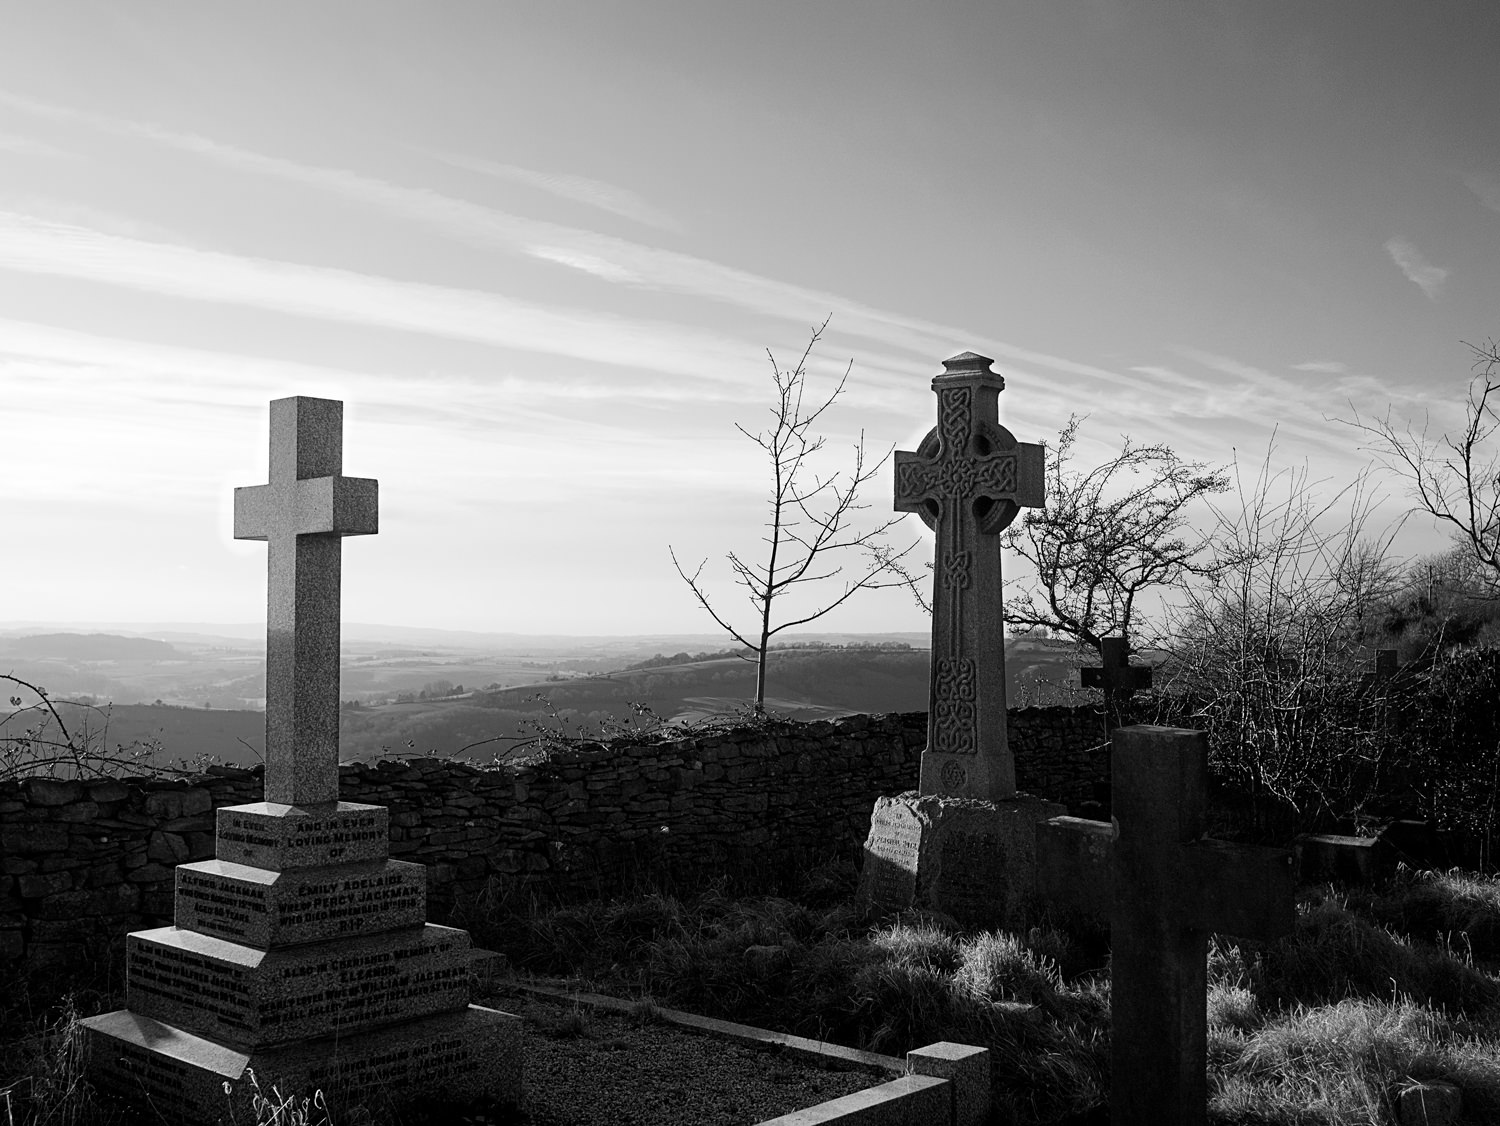 At the edge of Lansdown cemetery, looking over a low, stone wall, the valley stretches out as far as the eye can see. In the foreground are two graves with tall crosses. One cross is plain and the other is ornate, in the style of ancient Celtic crosses